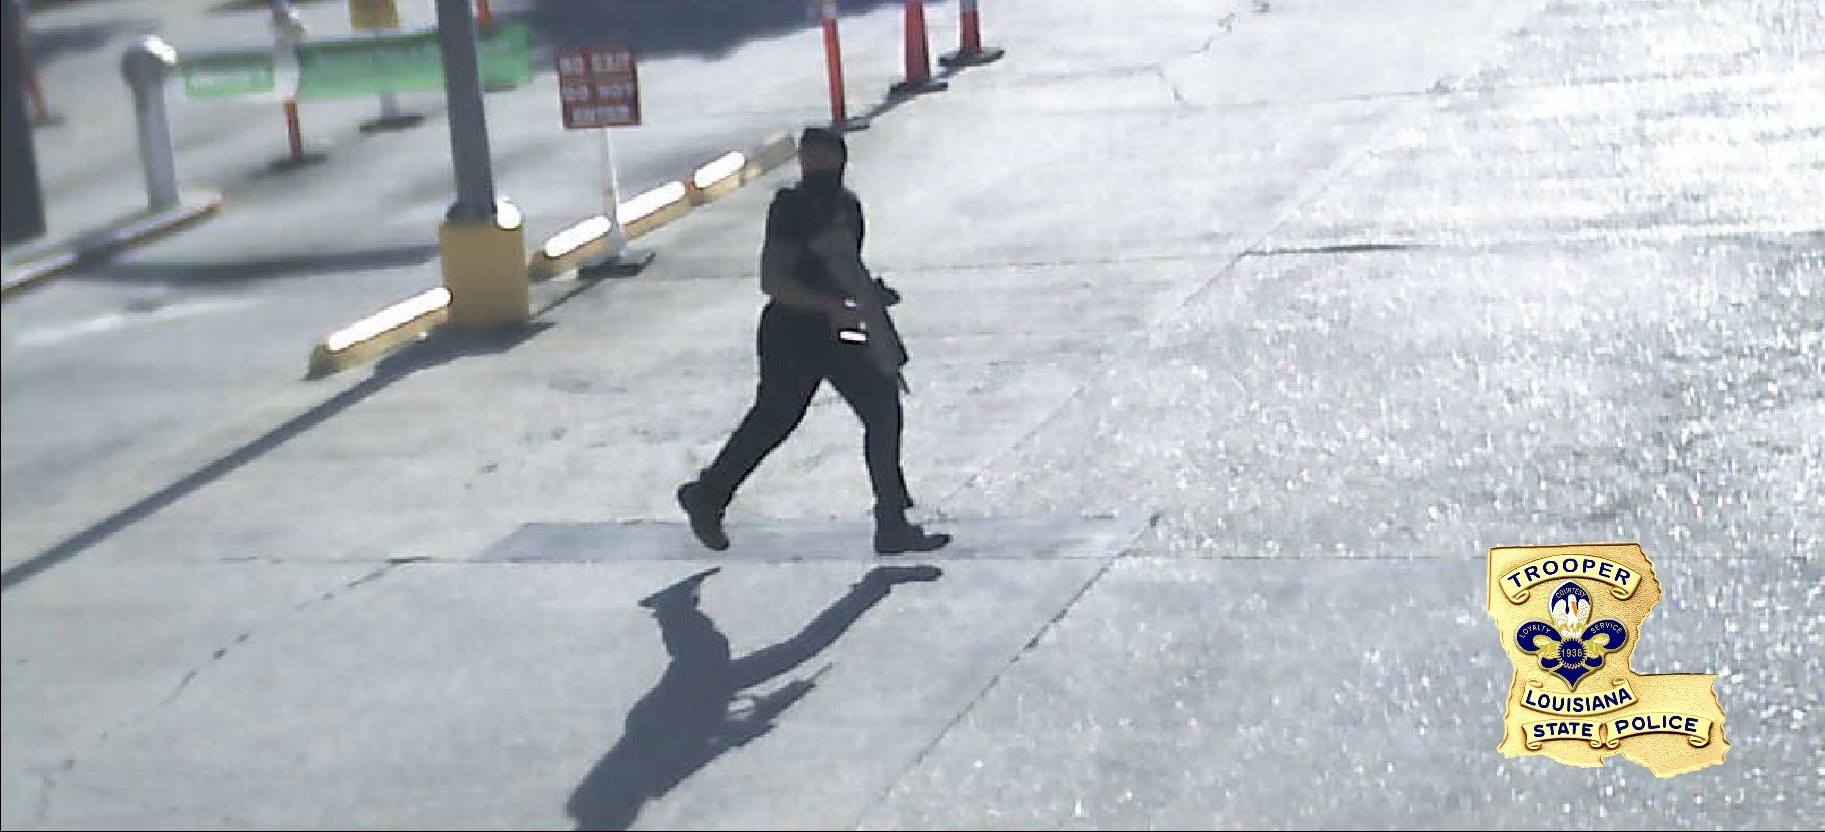 This surveillance photo shows the gunman at the scene of the shooting. (Louisiana State Police)